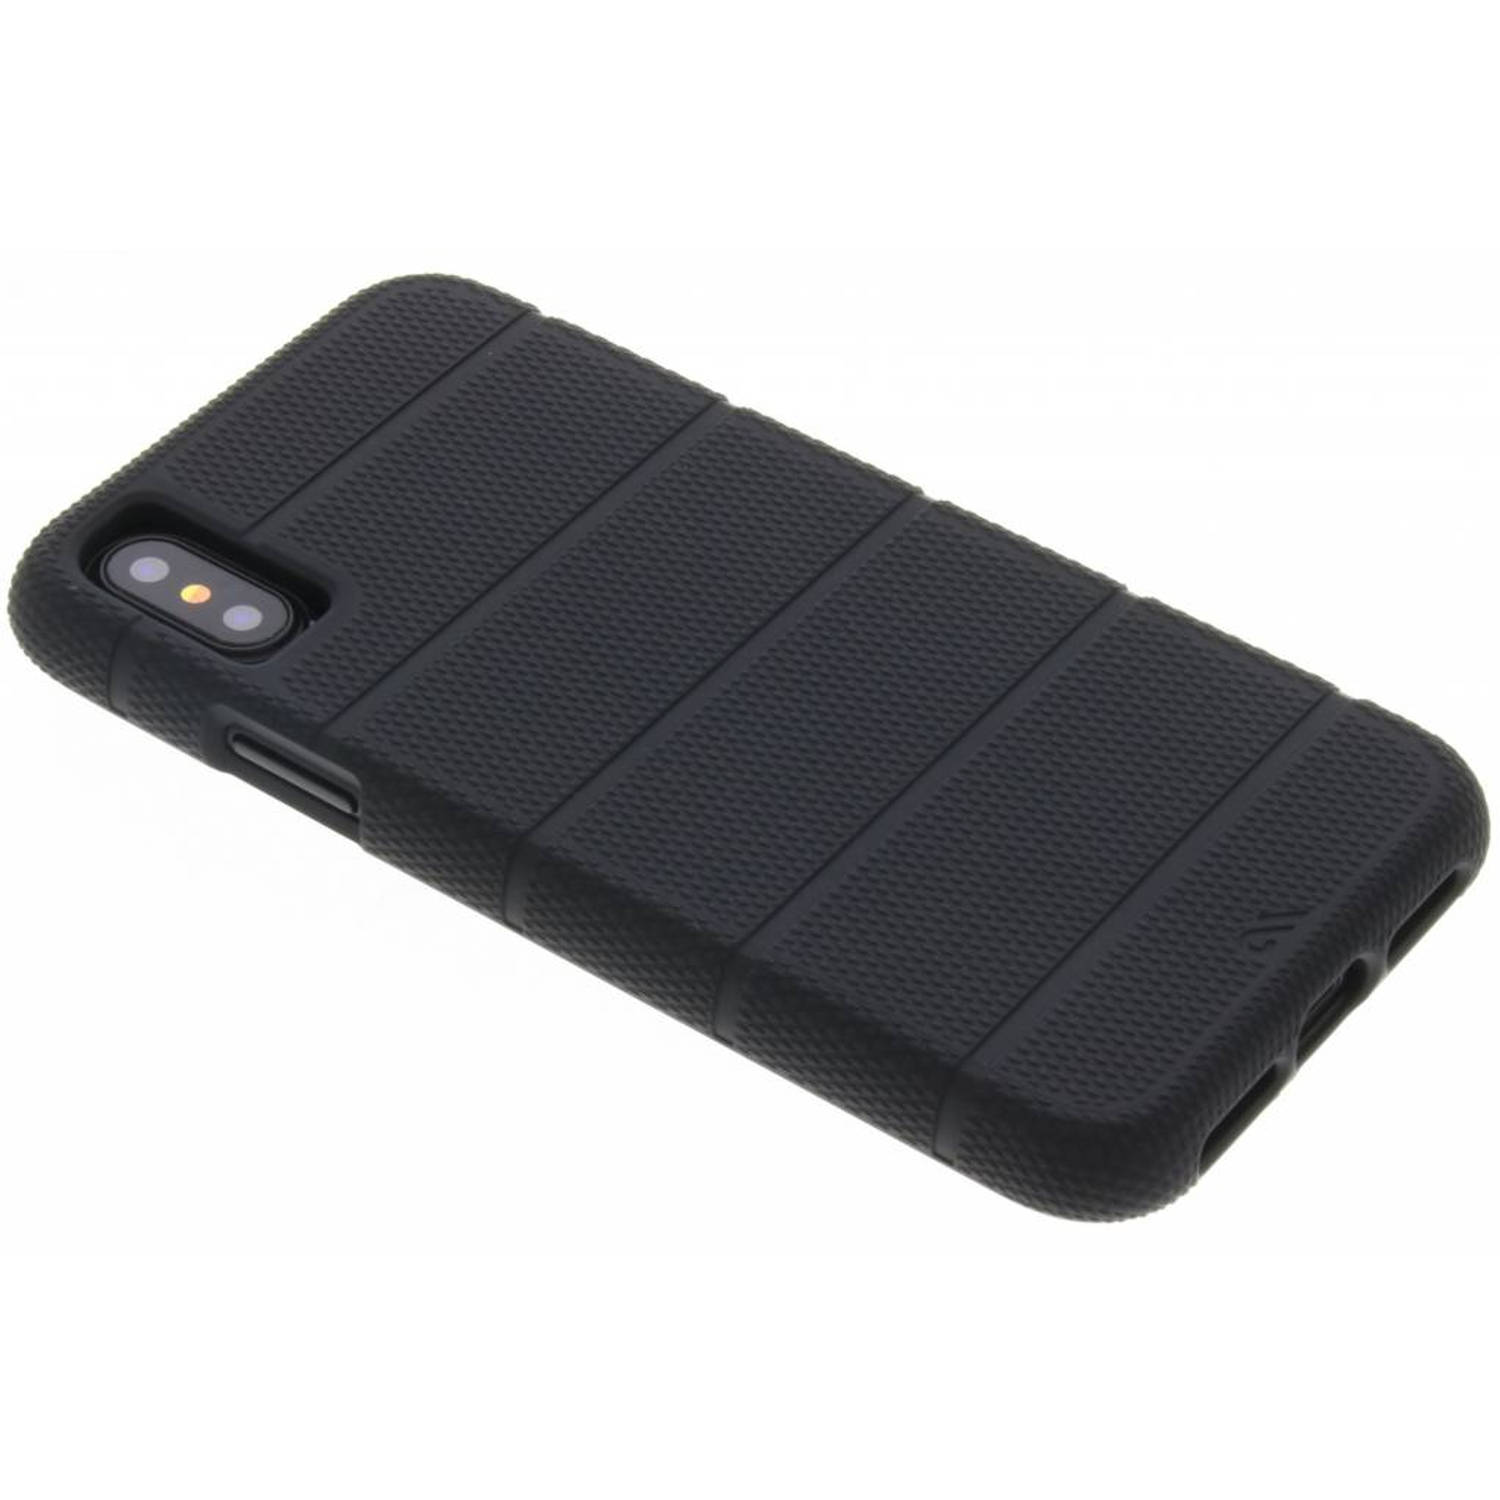 Zwarte Tough Mag voor de iPhone Xs / X